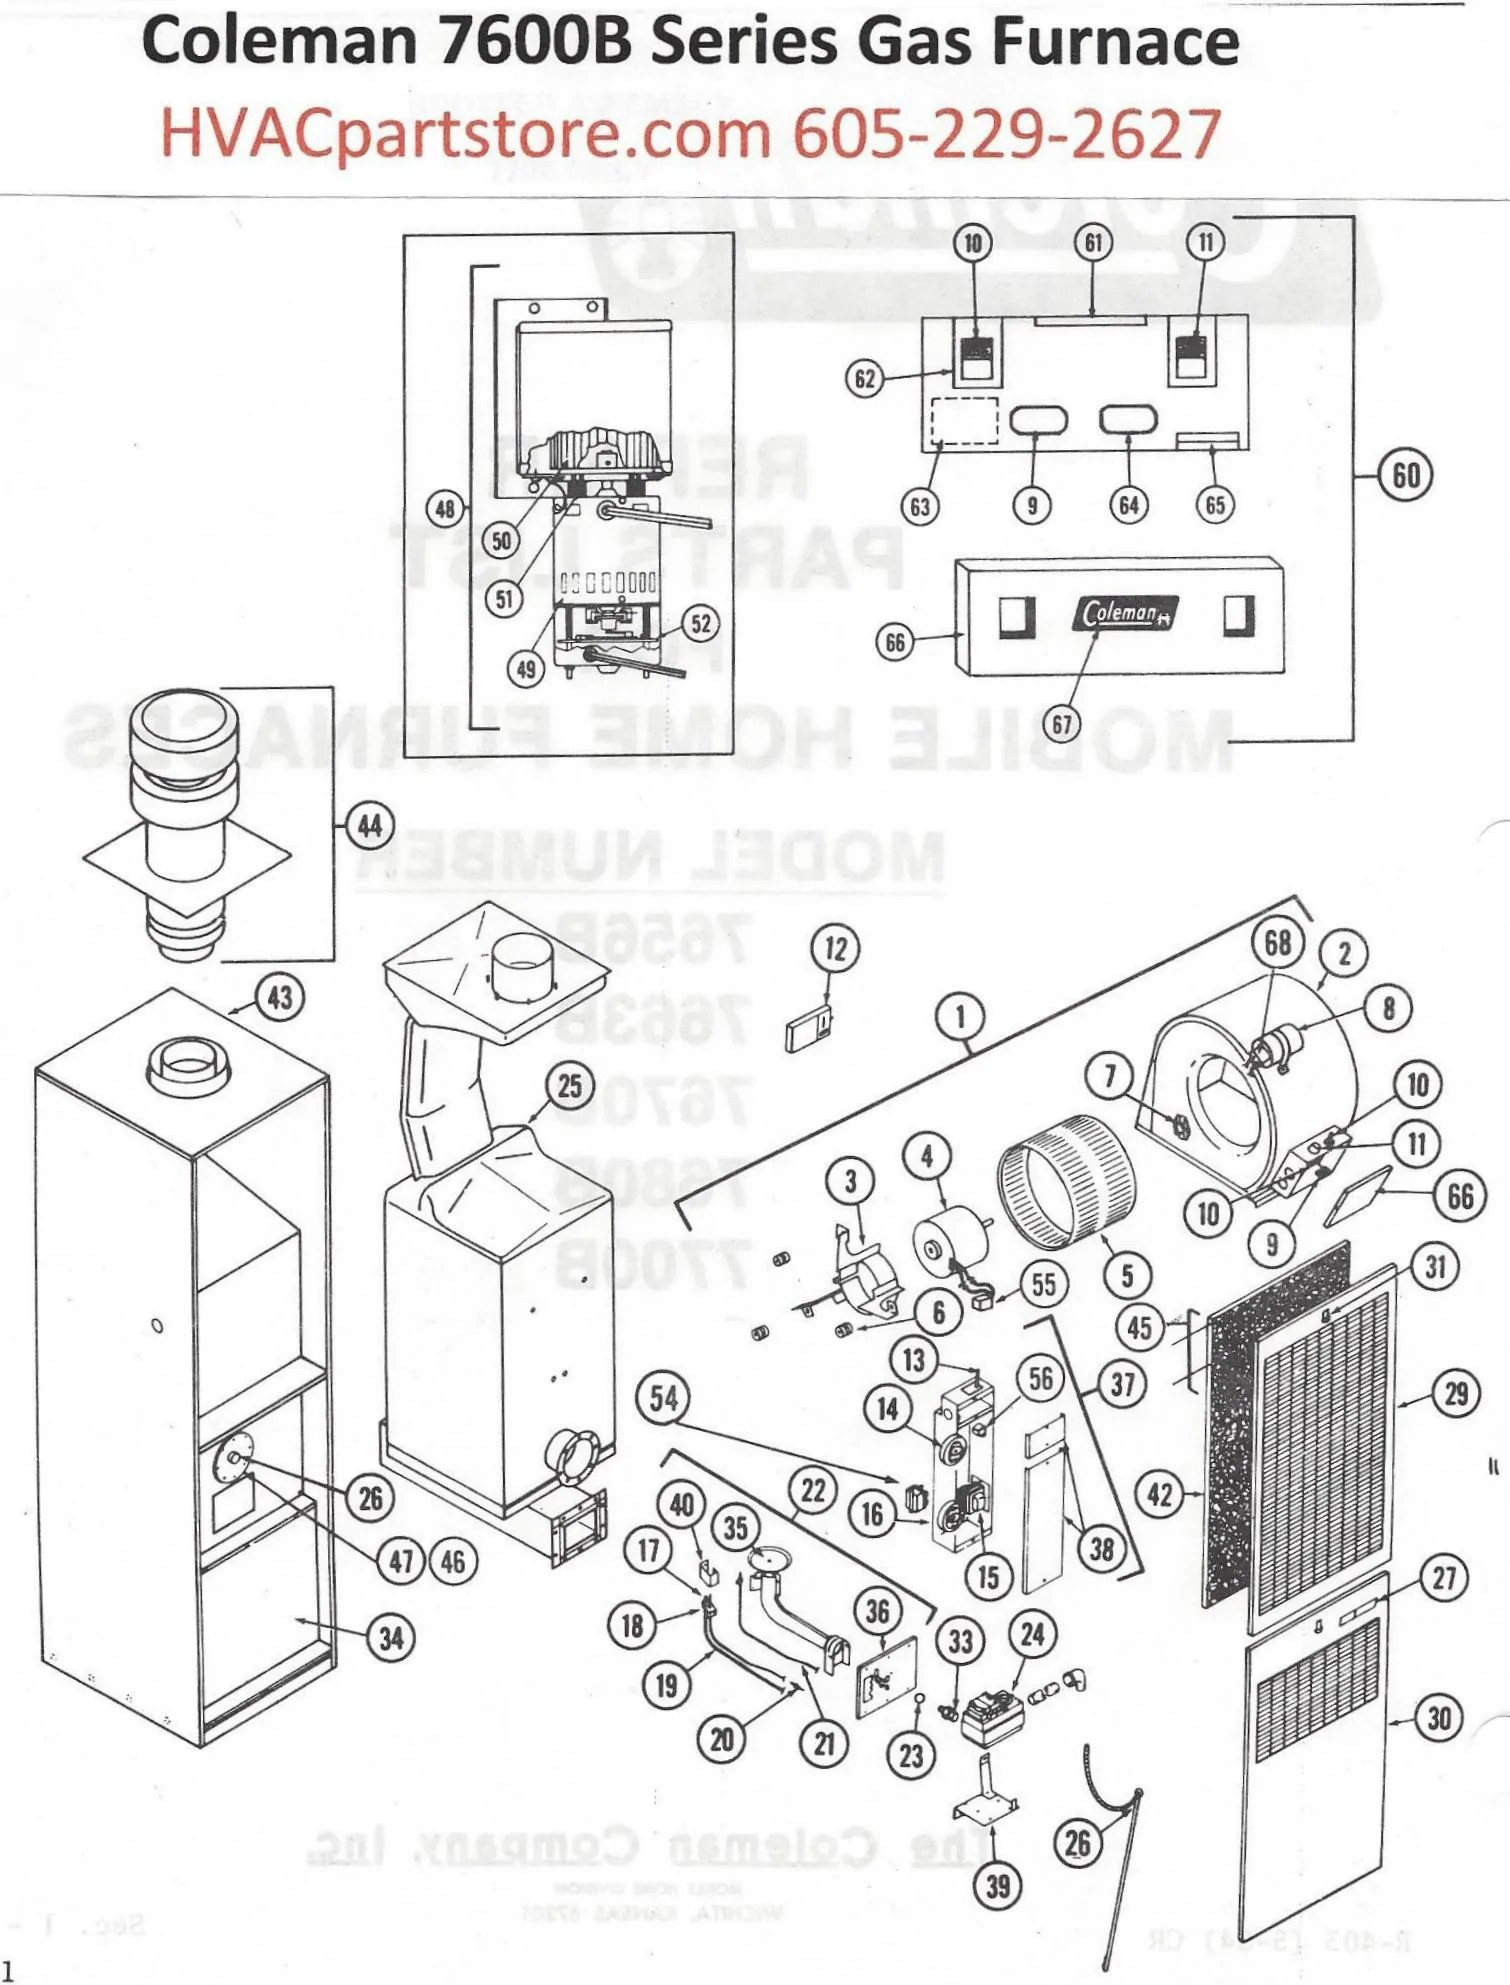 coleman gas furnace wiring diagram simple wiring schema7680b856 coleman gas furnace parts hvacpartstore coleman gas furnace [ 1510 x 1985 Pixel ]